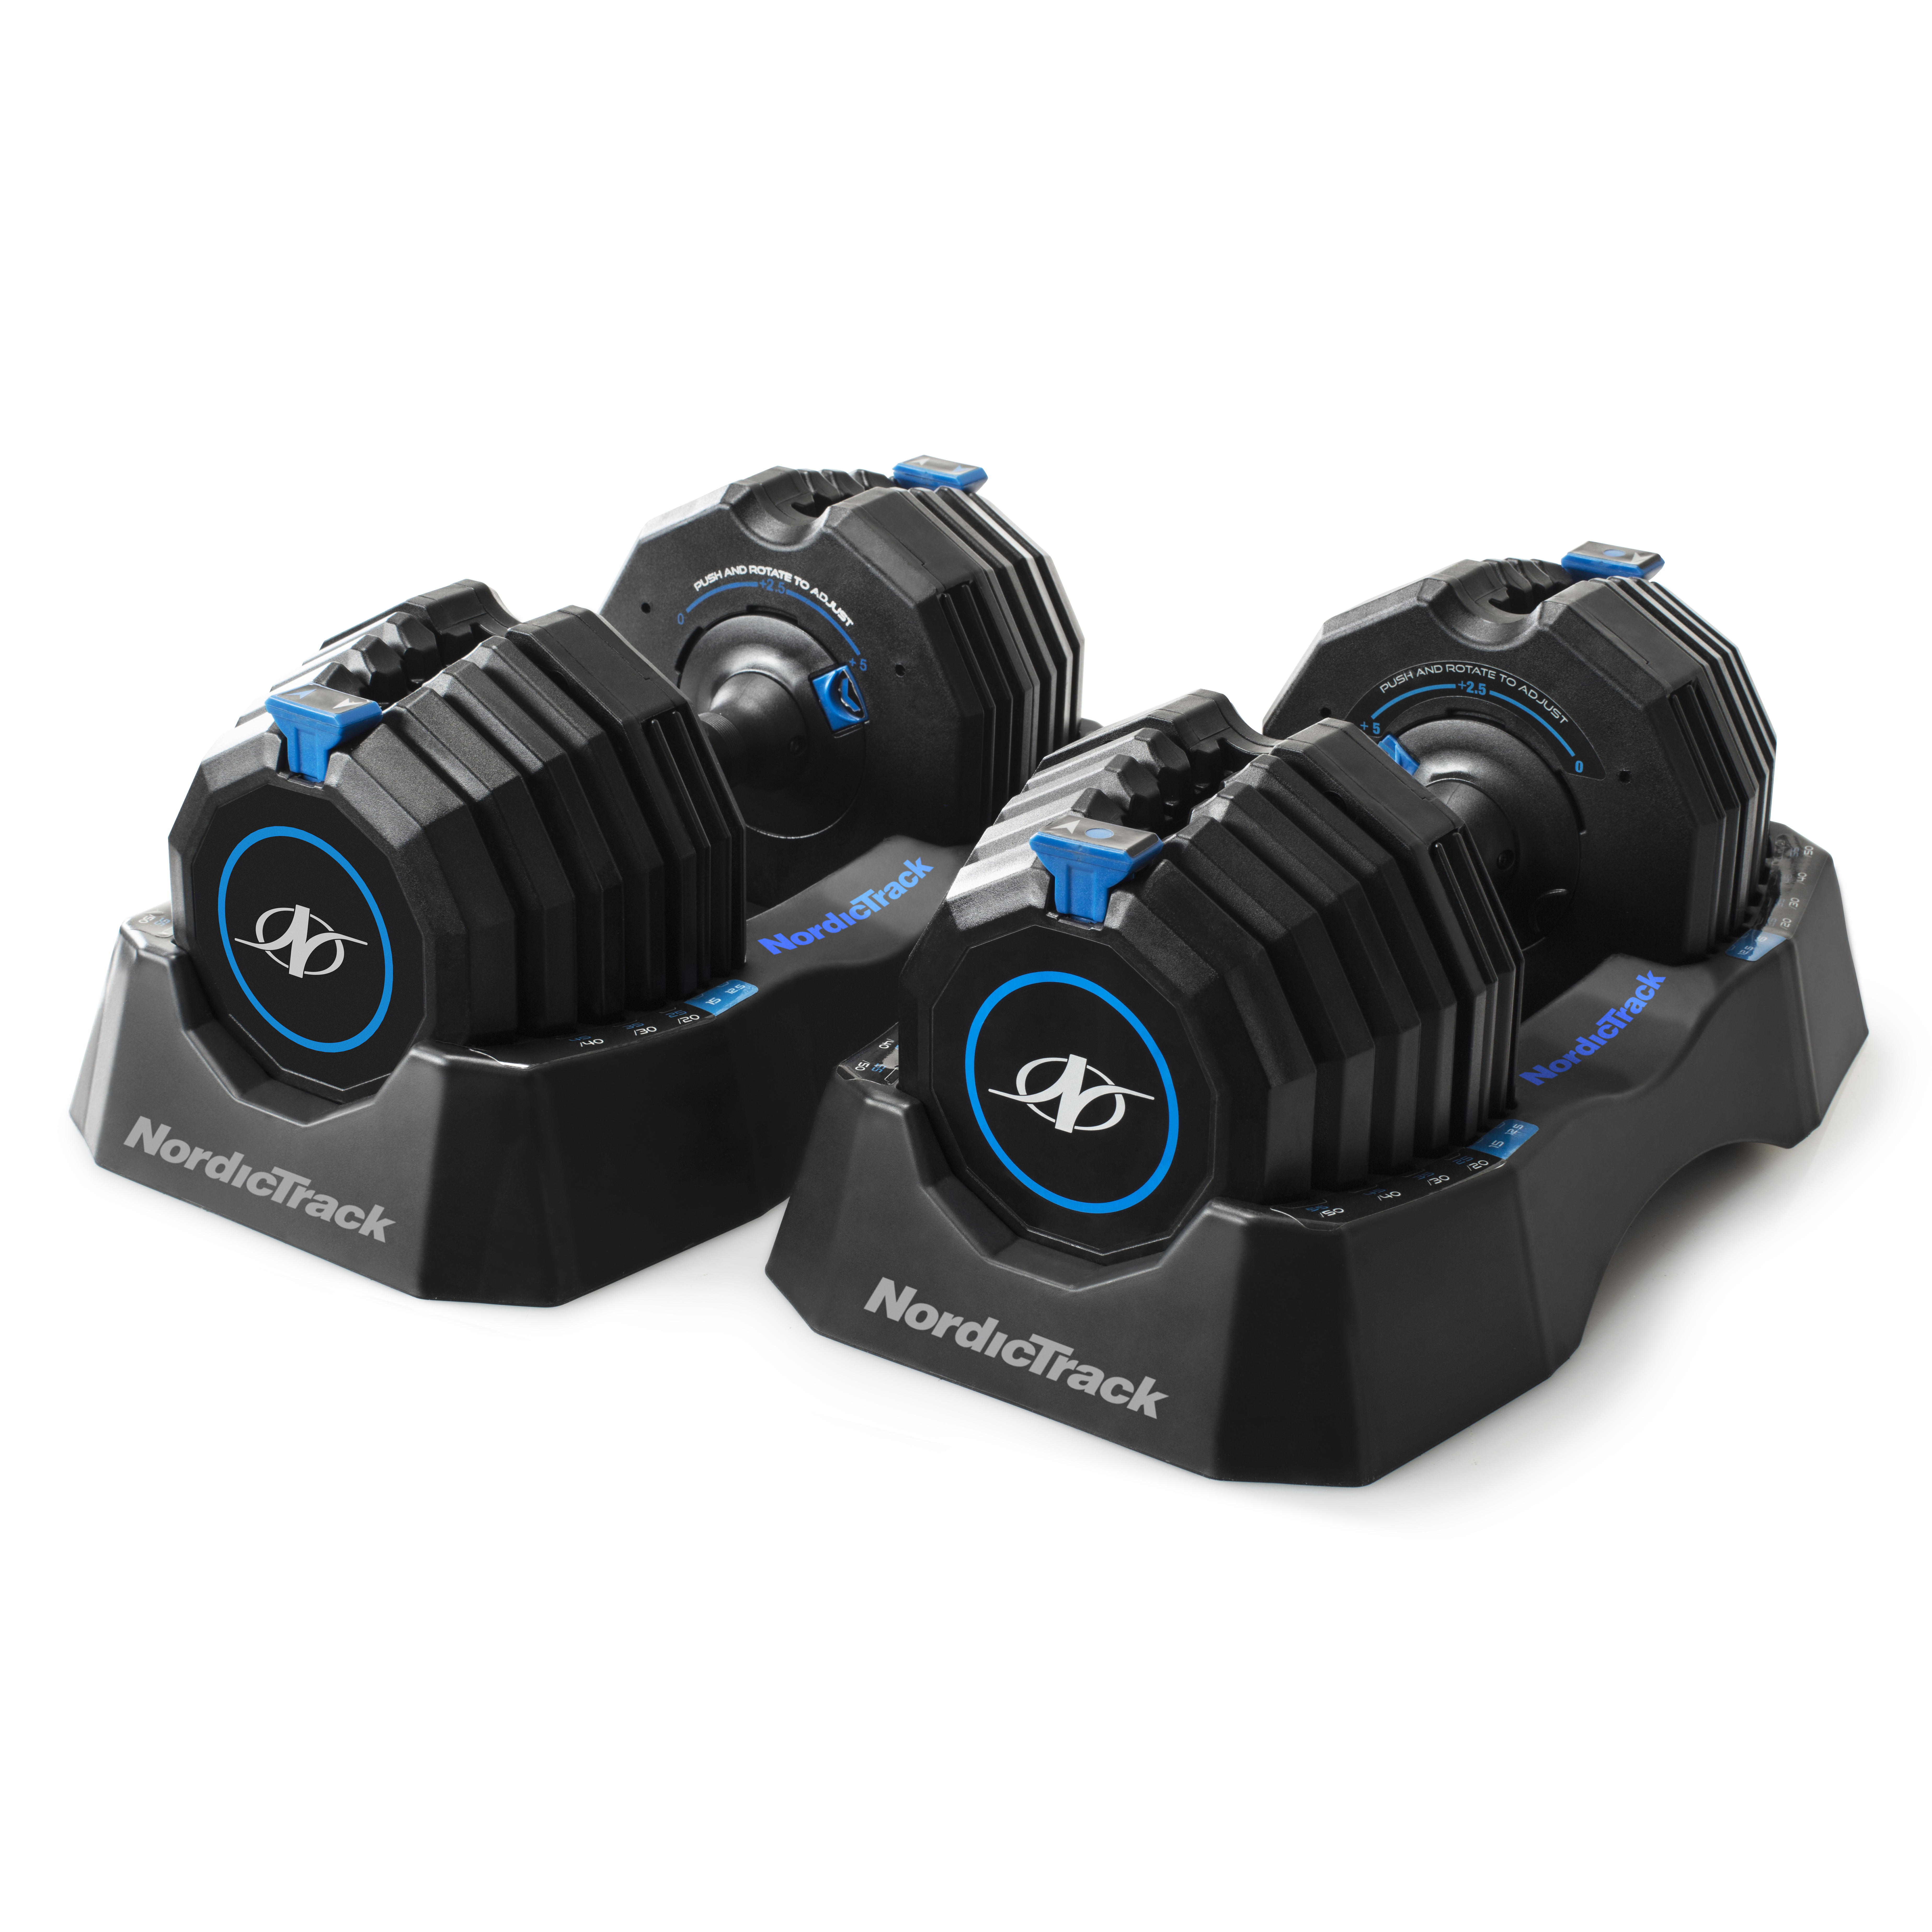 Nordictrack Select-a-Weight 55 Lb. Adjustable Dumbbell Set, Adjusts from 10-55 Lbs, Pair